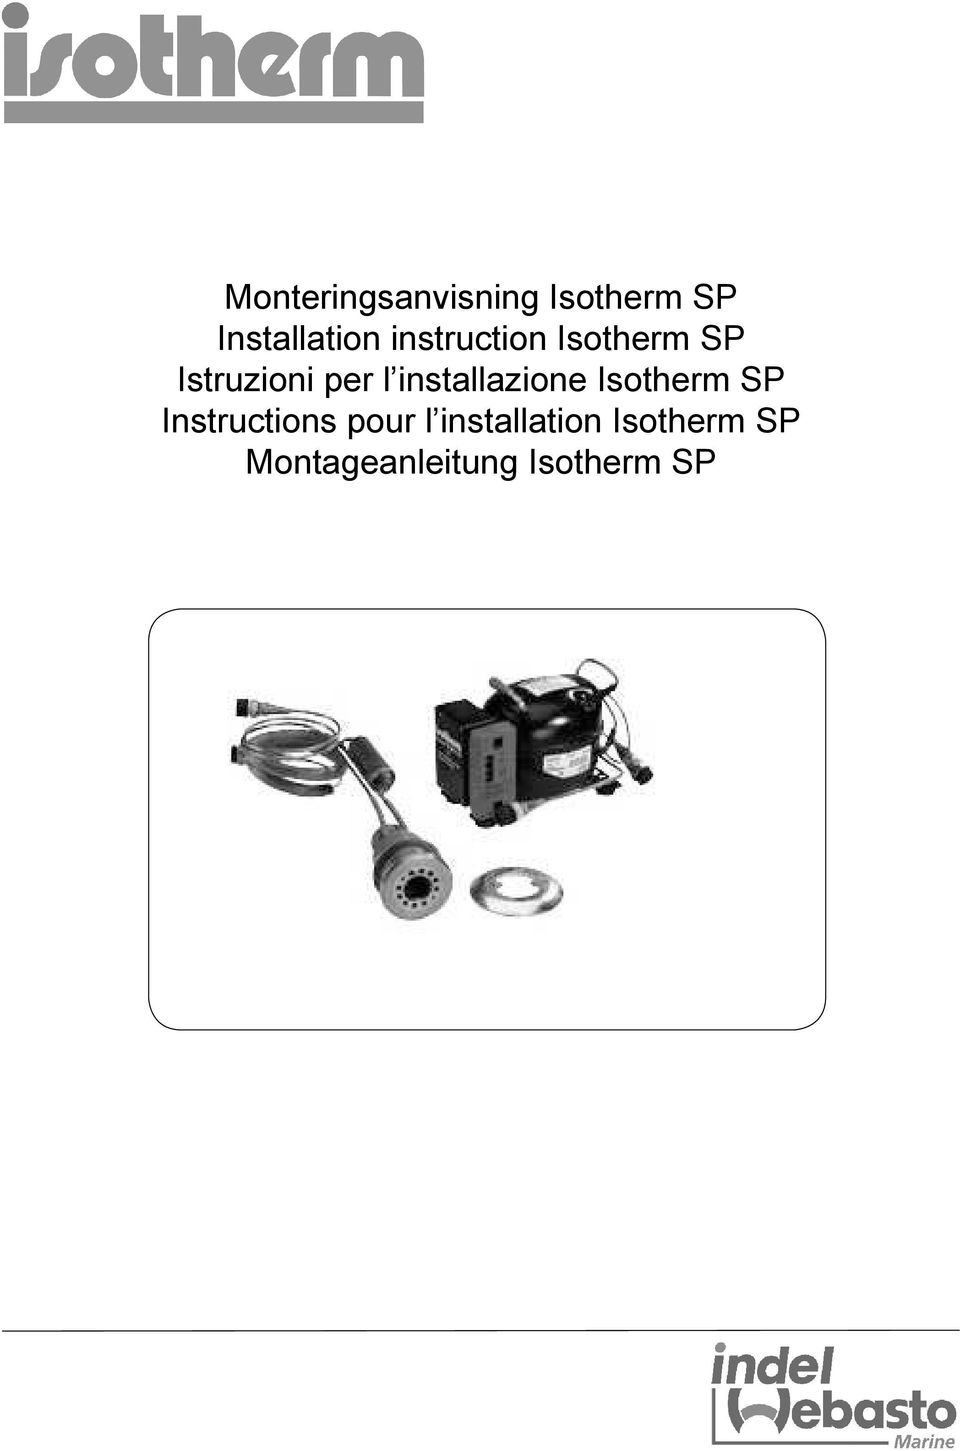 installazione Isotherm SP Instructions pour l